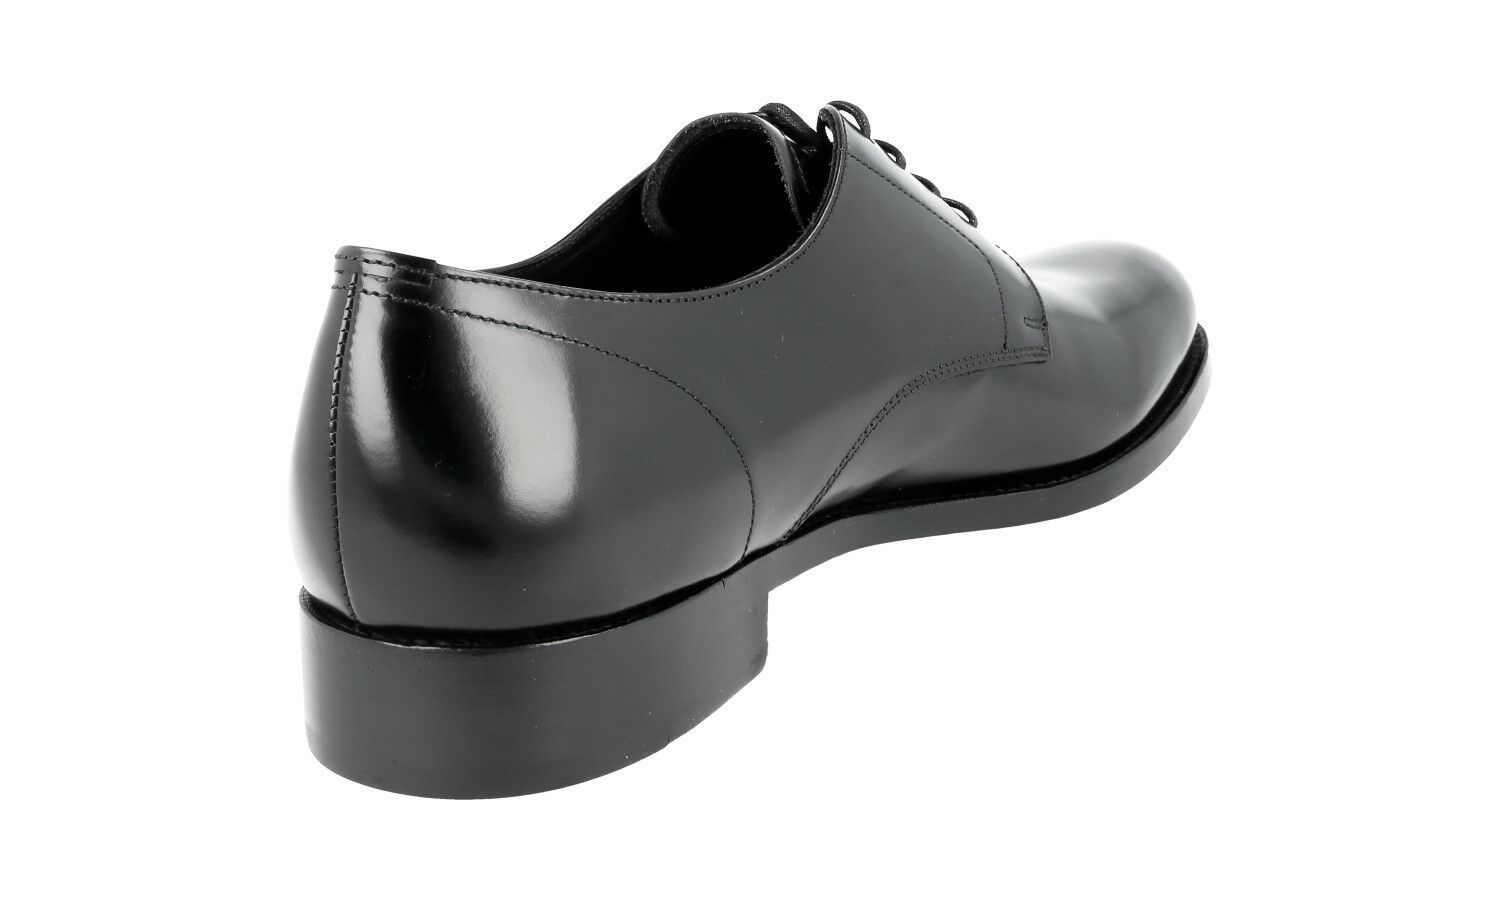 LUXUS PRADA BUSINESS 9 DERBY SCHUHE 2EB116 SCHWARZ NEU NEW 9 BUSINESS 43 43,5 f25617